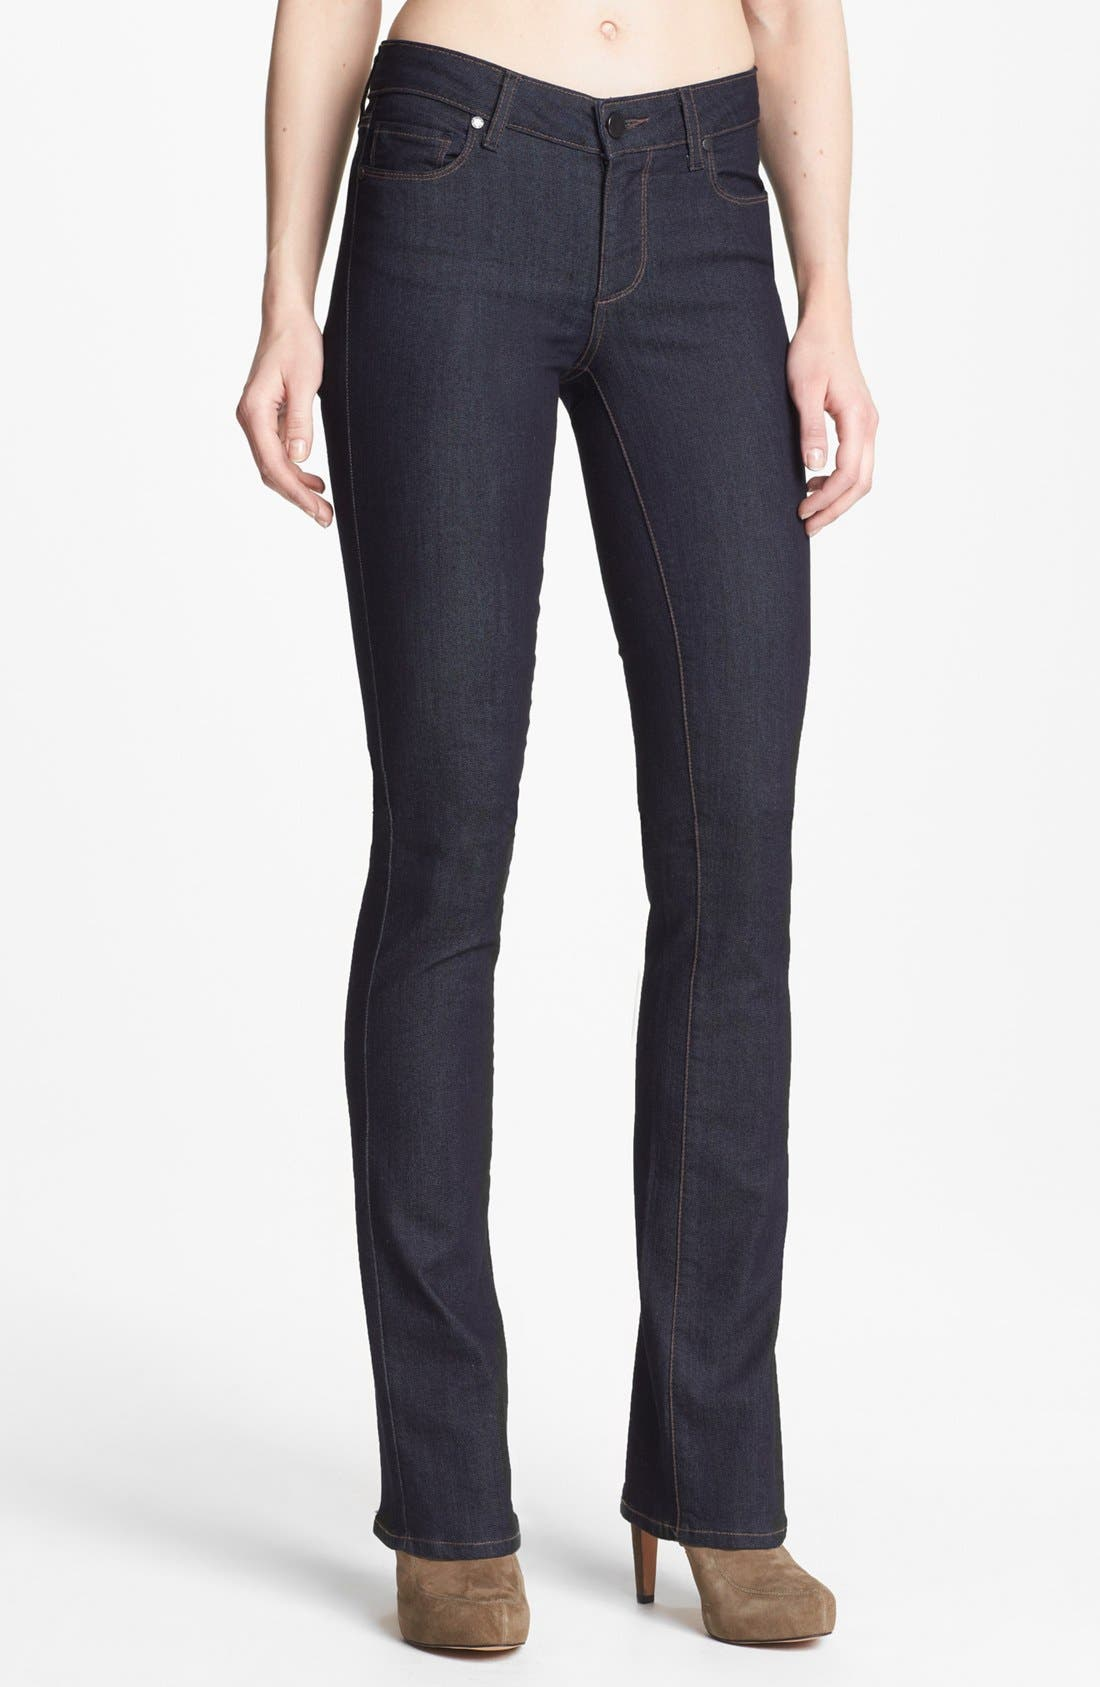 Main Image - Paige Denim 'Manhattan' Baby Bootcut Jeans (Elyse)